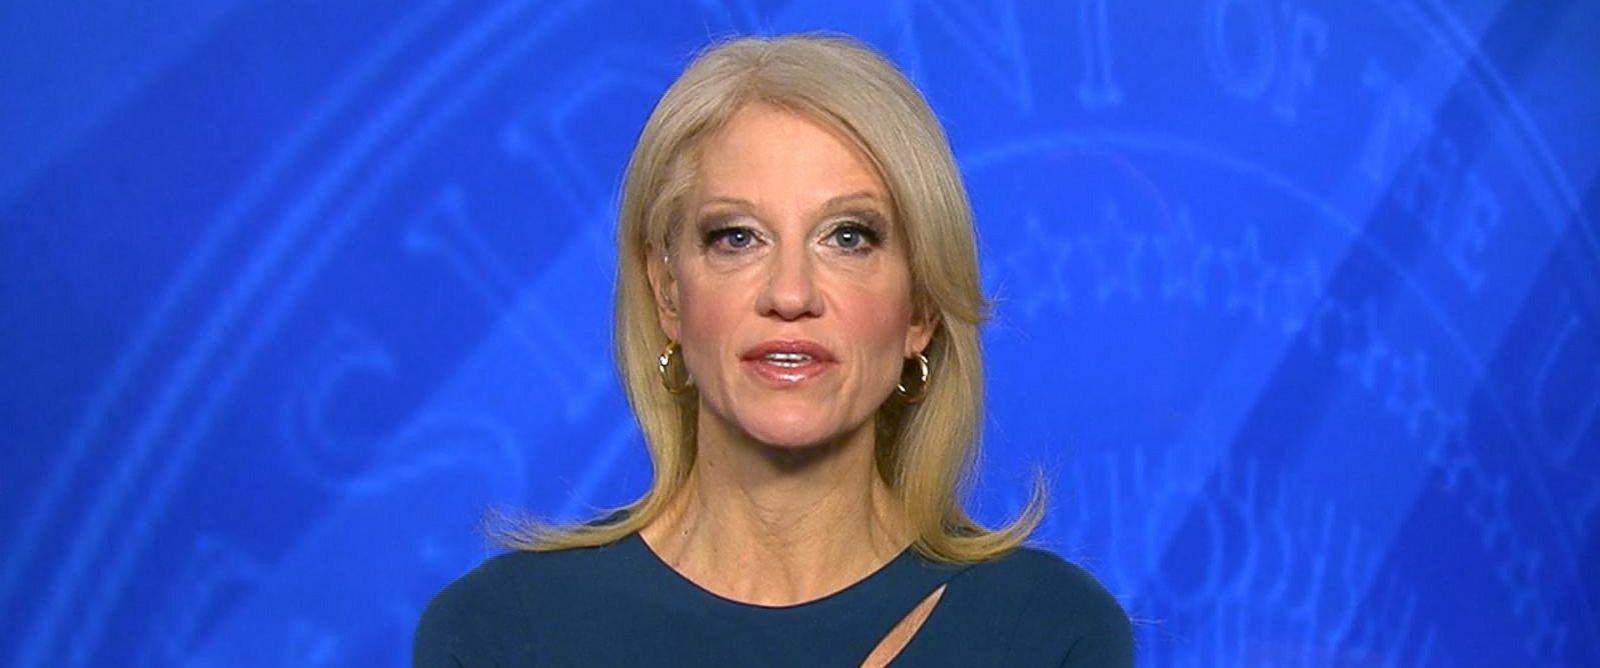 conway gop senators need to support president trump abc news photo kellyanne conway appears on good morning america jan